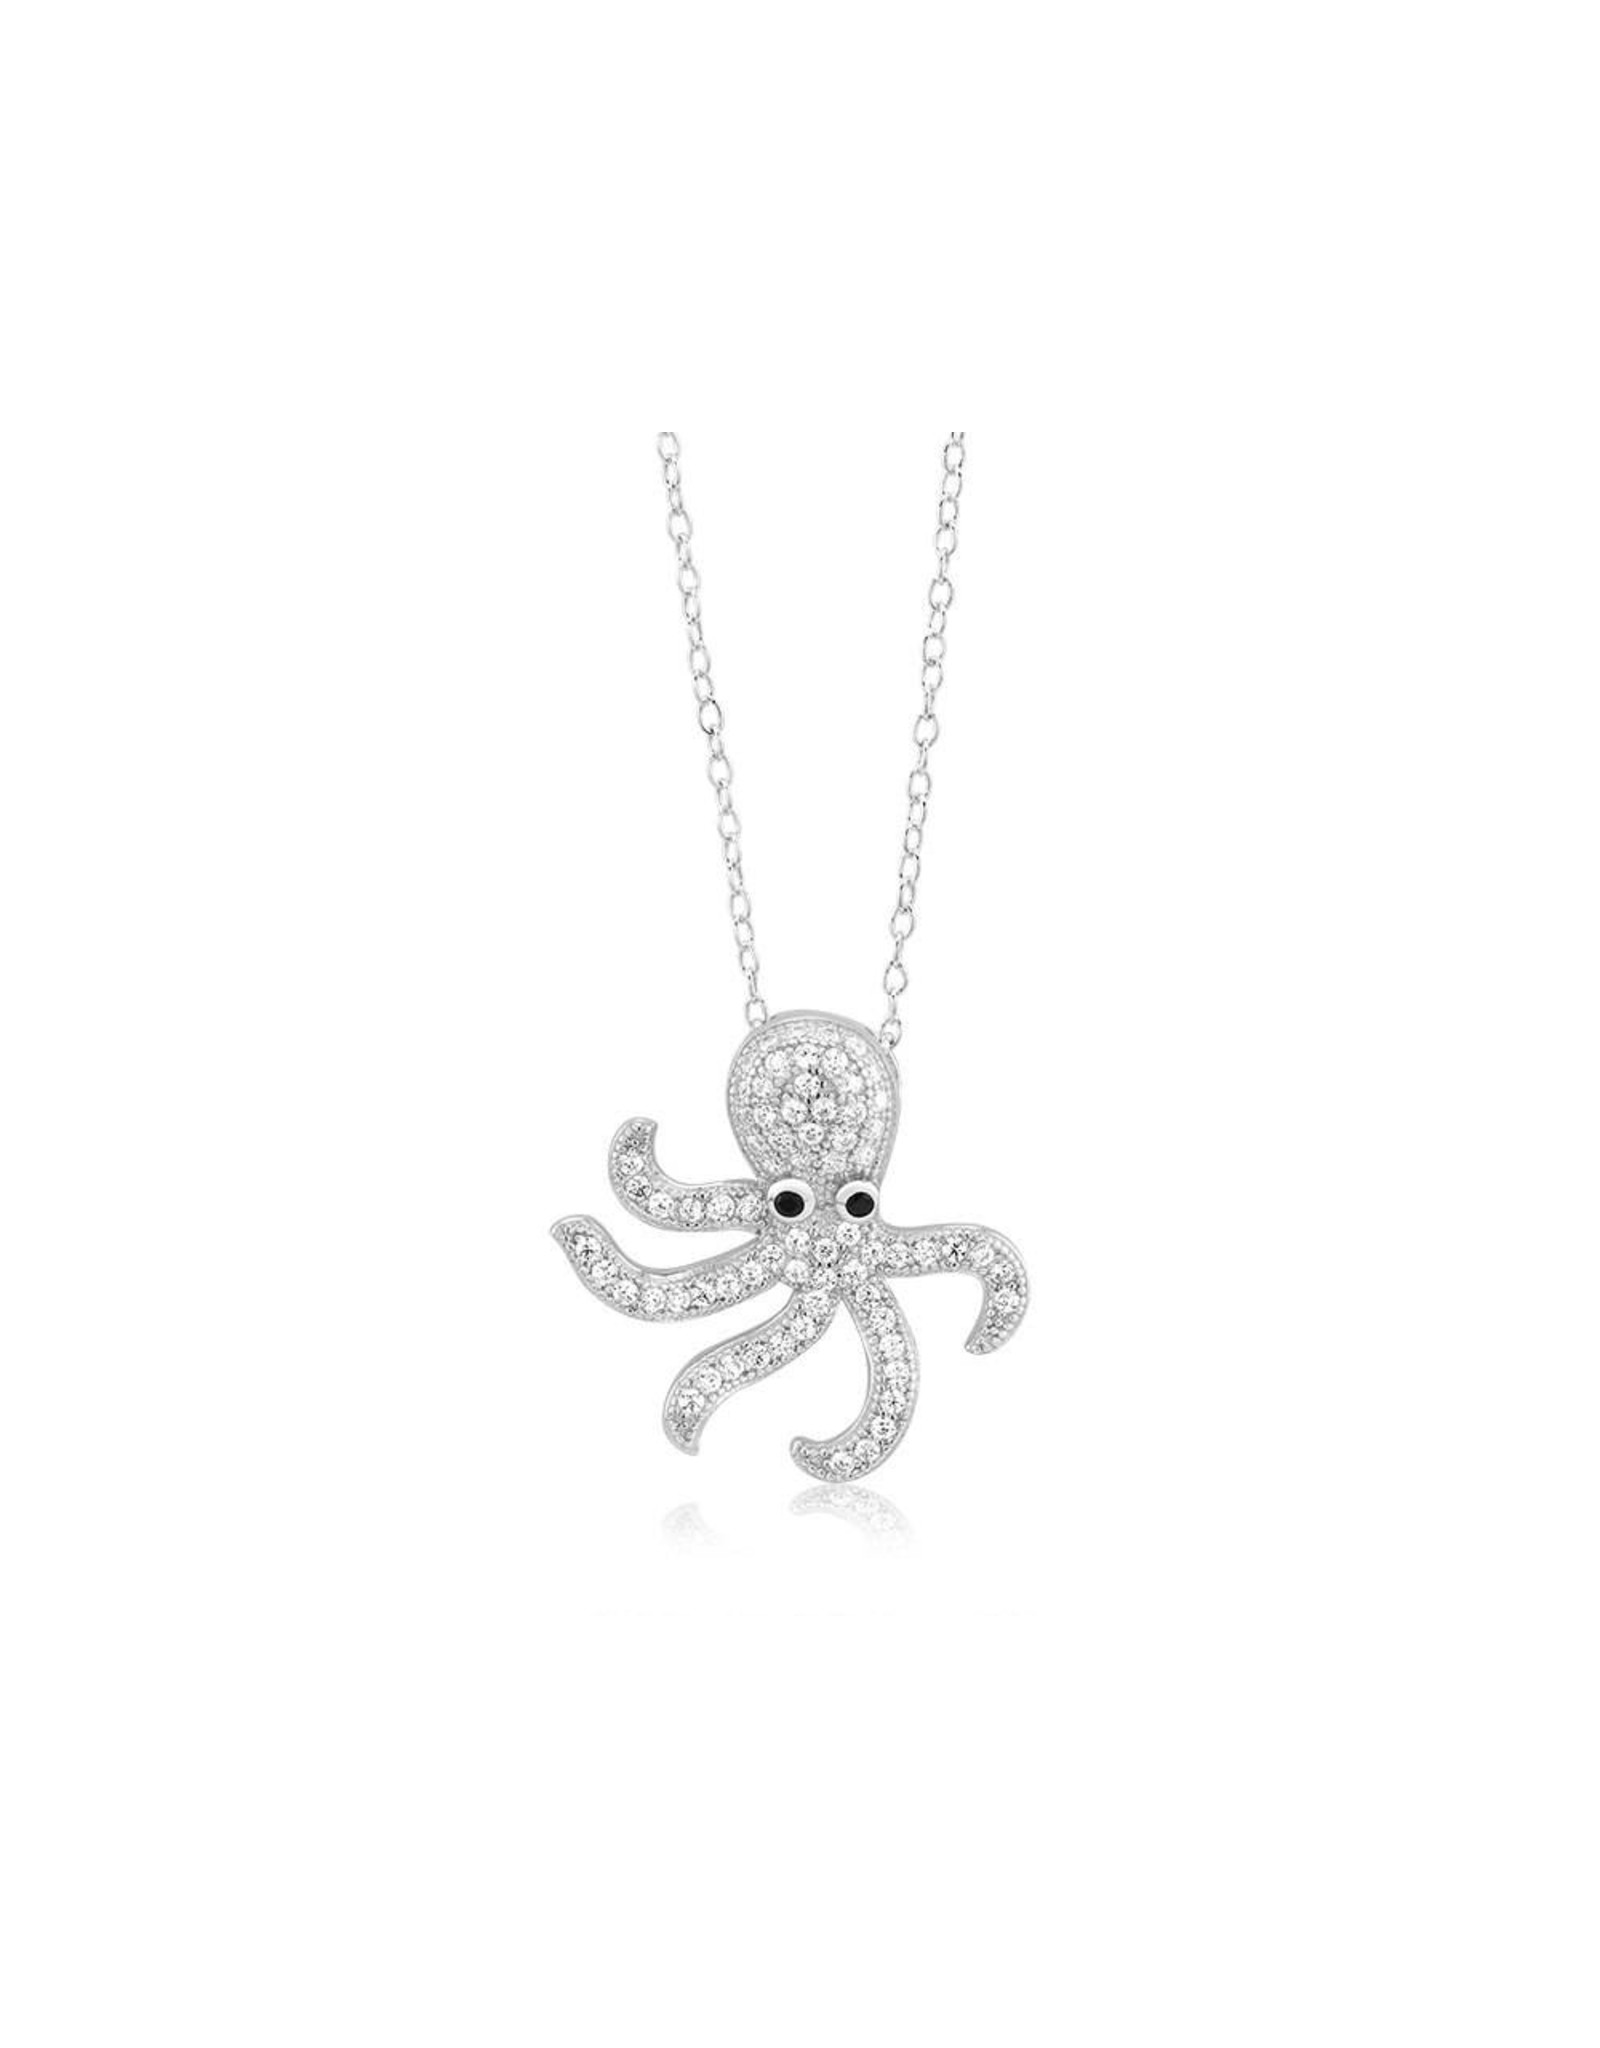 Octopus - CZ with Black Eyes